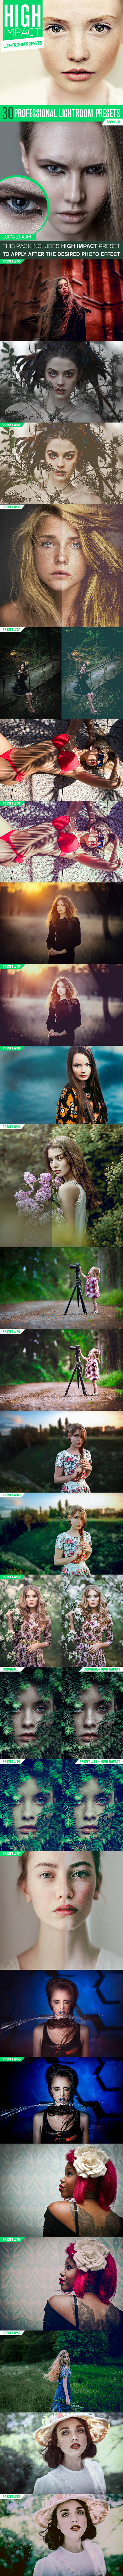 30 High Impact Lightroom Presets Vol.2 - Portrait Lightroom Presets